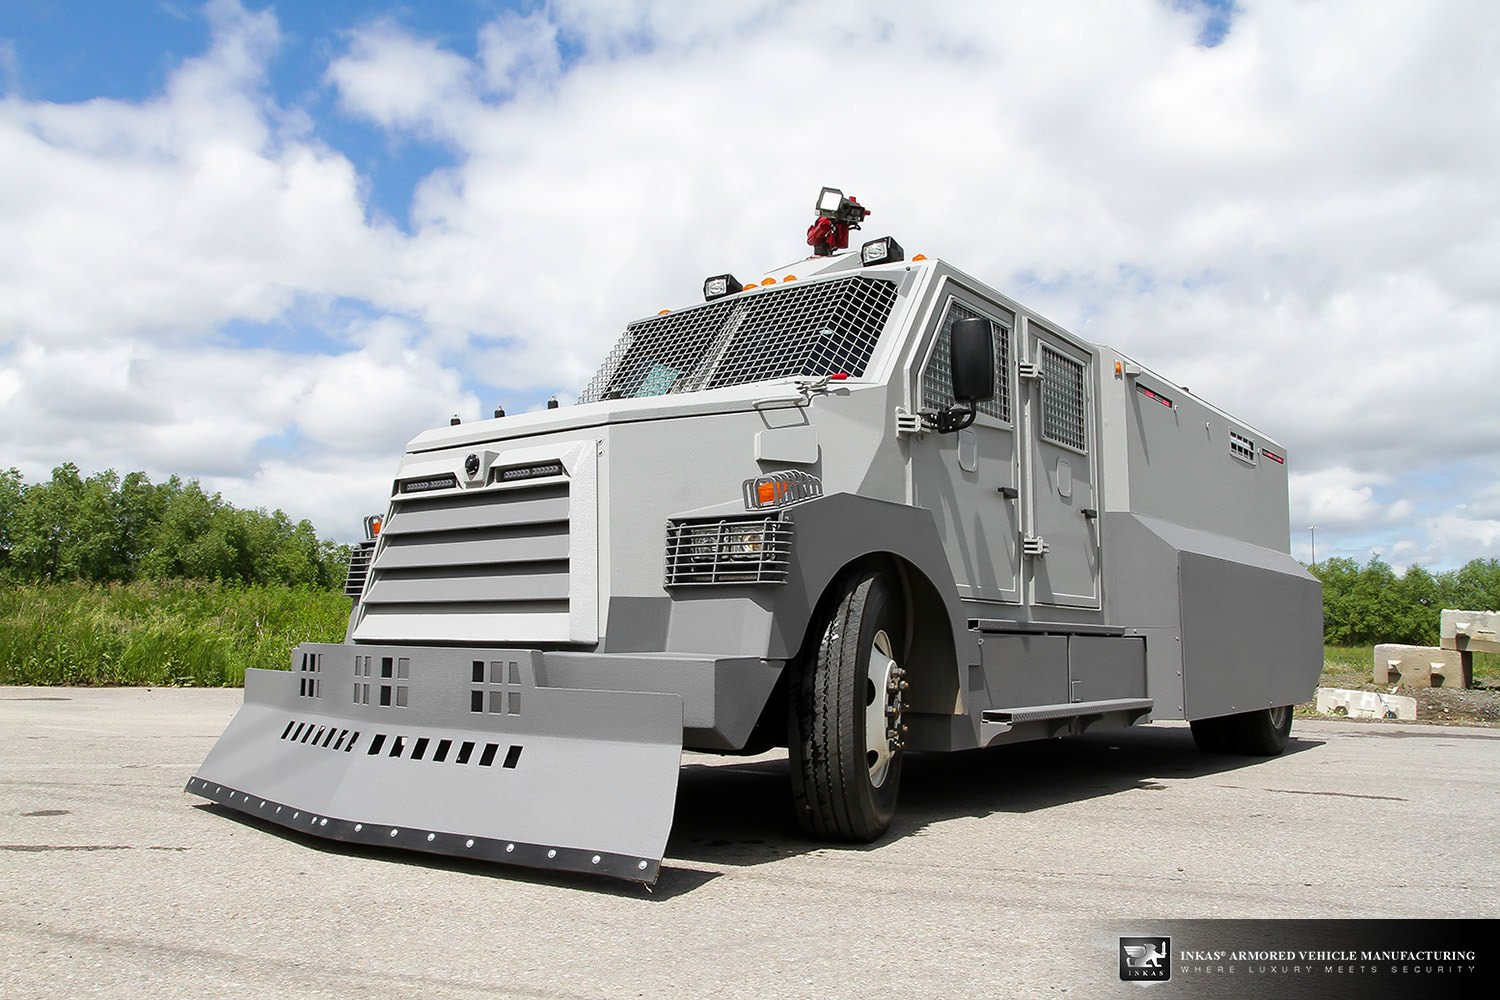 INKAS® Riot Control Vehicle For Sale - INKAS Armored ...